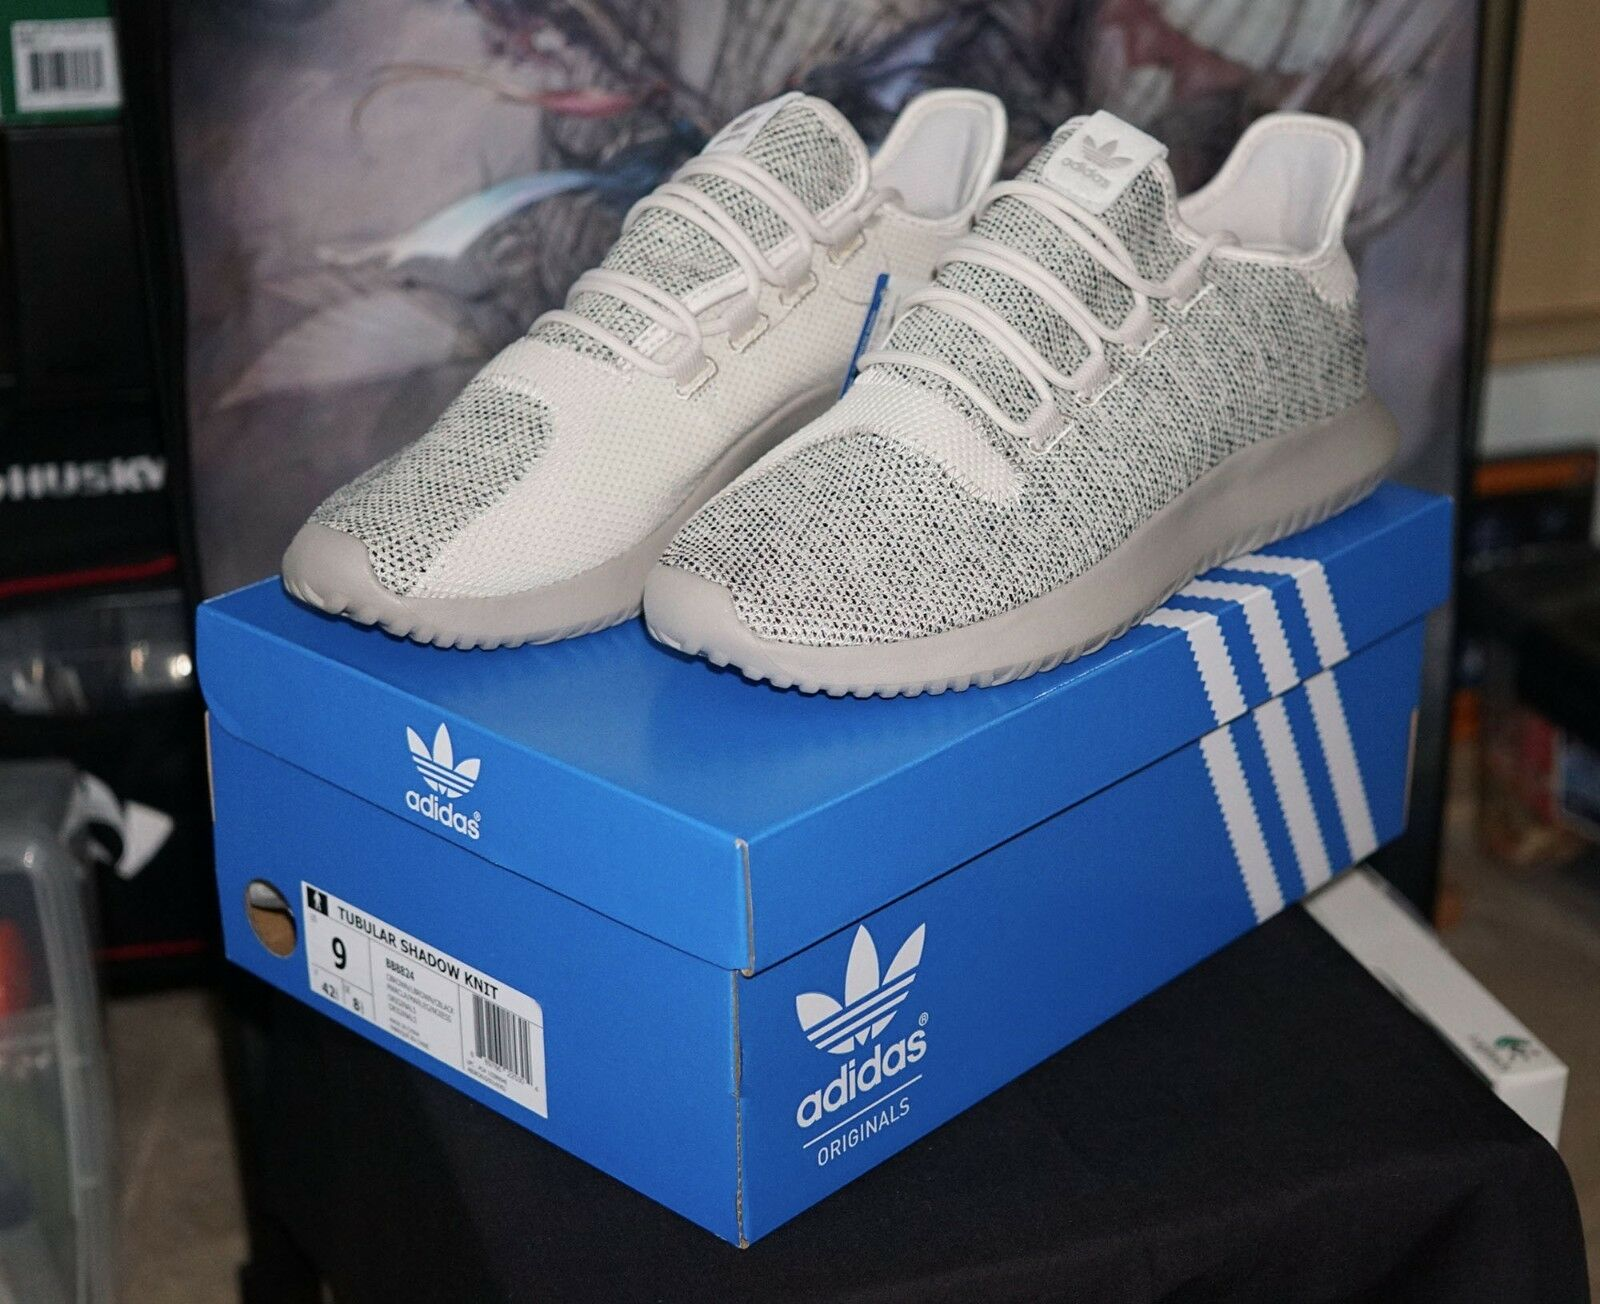 NEW - adidas Originals Tubular Shadow Knit Clear Brown (Men's Size 9 shoes)